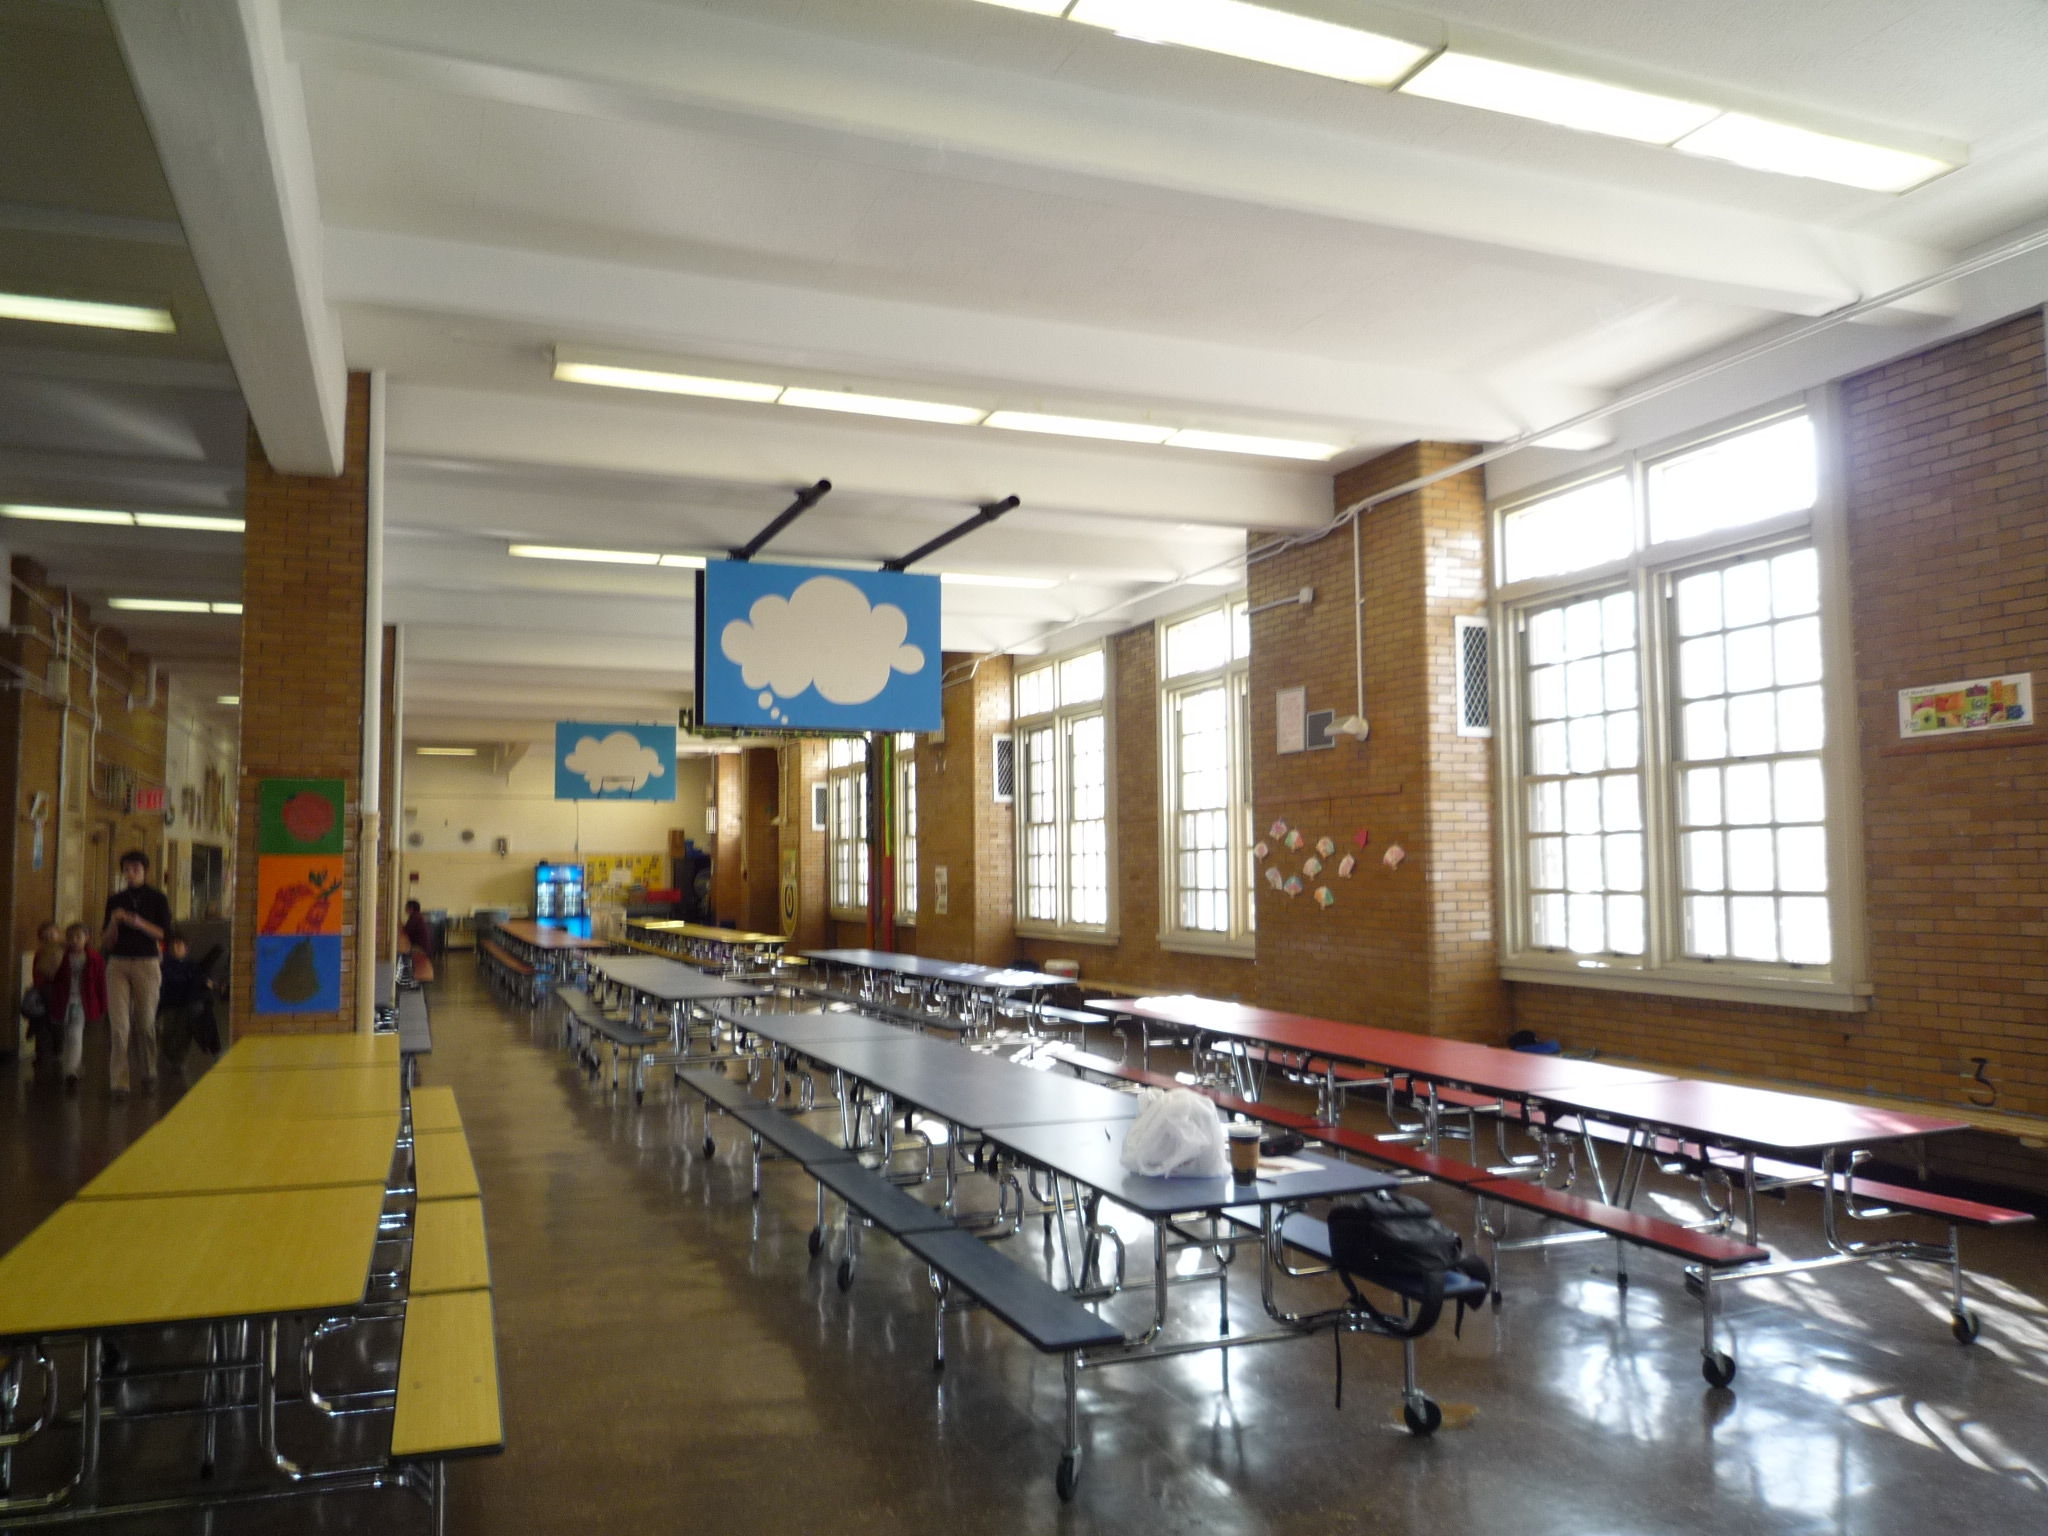 001-PS10_cafeteria-Before-Photo.jpg